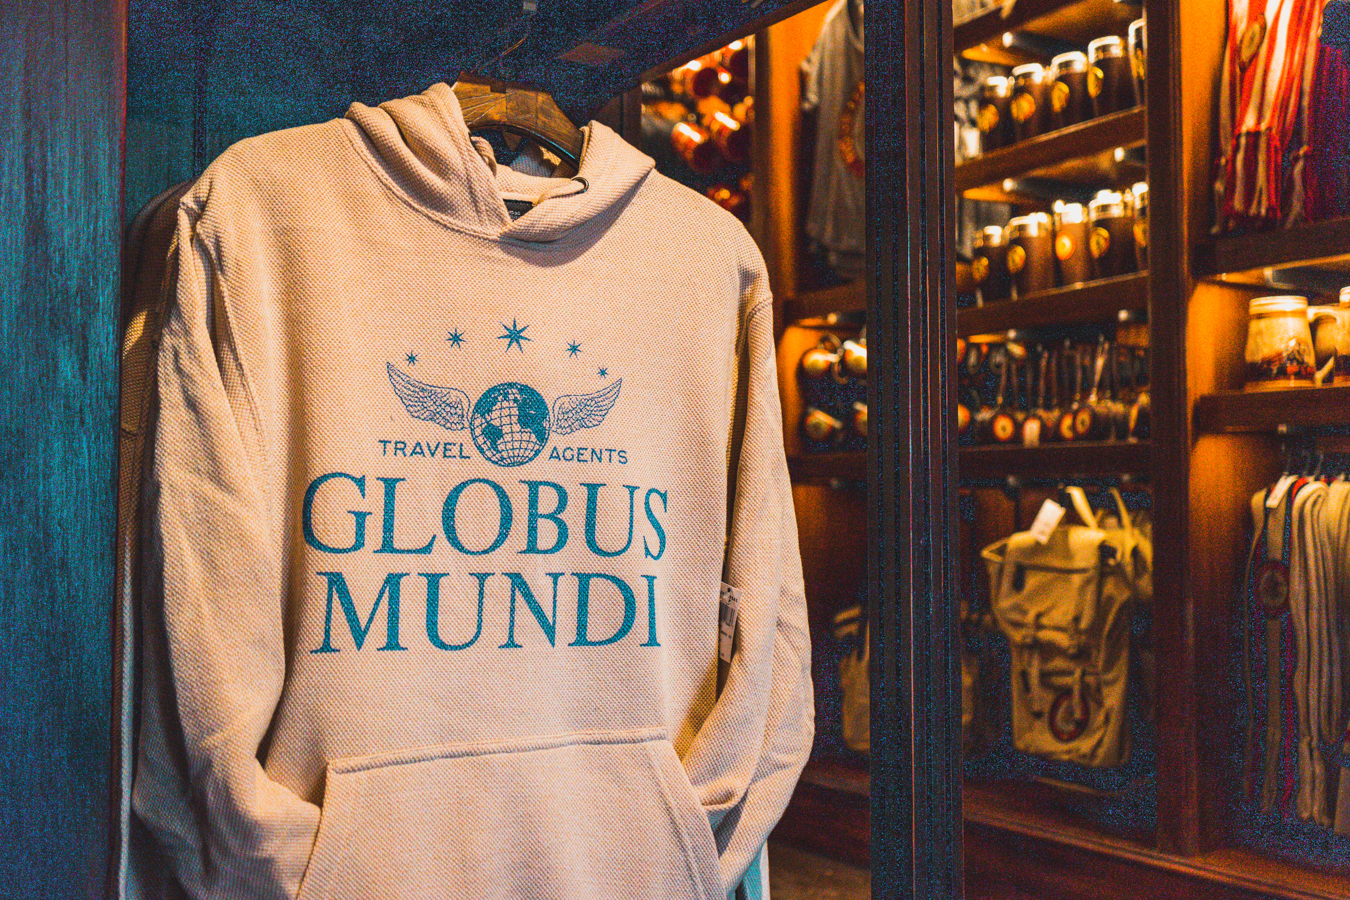 Snuggle up in this Globus Mundi sweatshirt.